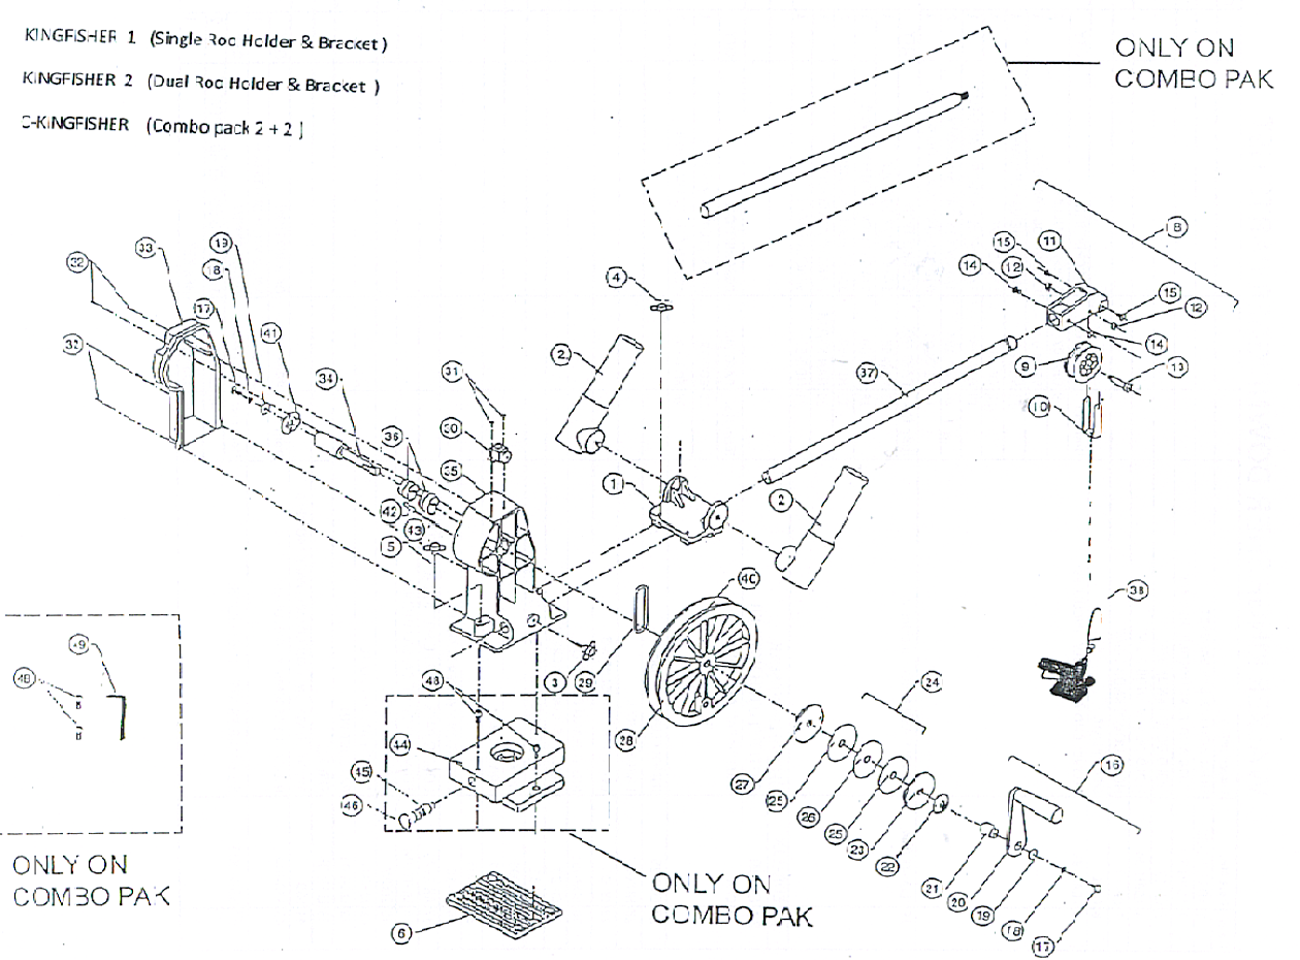 New Design Electric Automatic Cantilever Sliding 524372588 in addition Labels together with Elect 20 as well What Are The Parts Of A Master Cylinder Wiring Diagrams furthermore Ct70 Wiring Diagrams. on need parts for electric motors